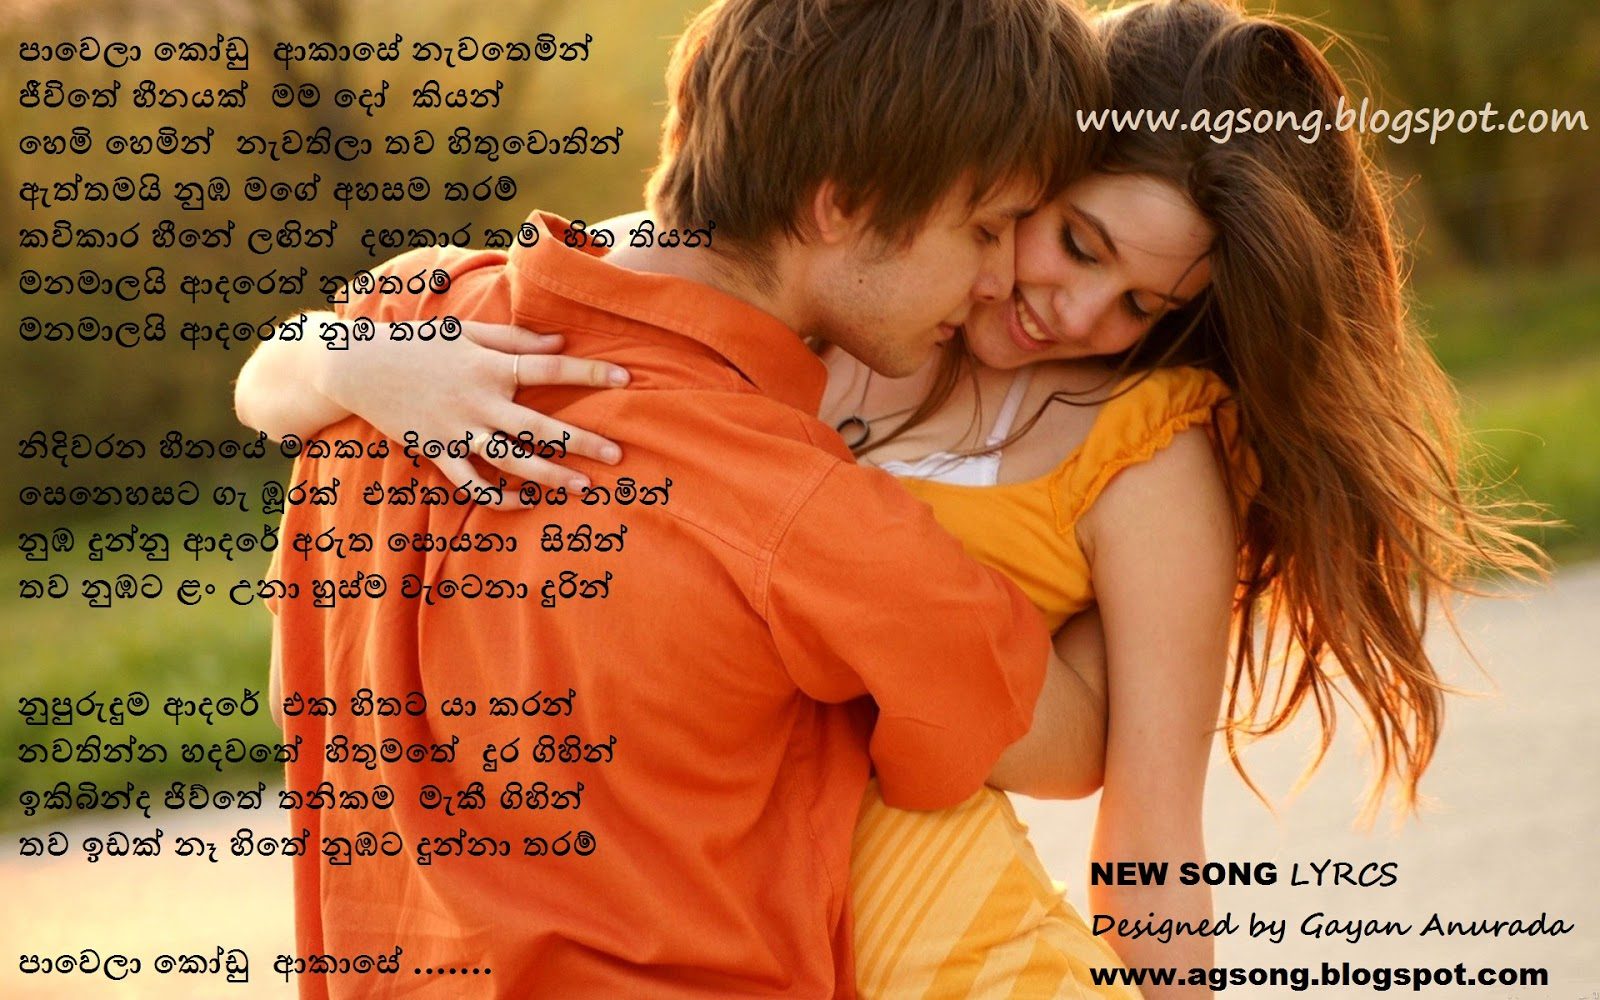 Madison : Hit english songs mp3 download